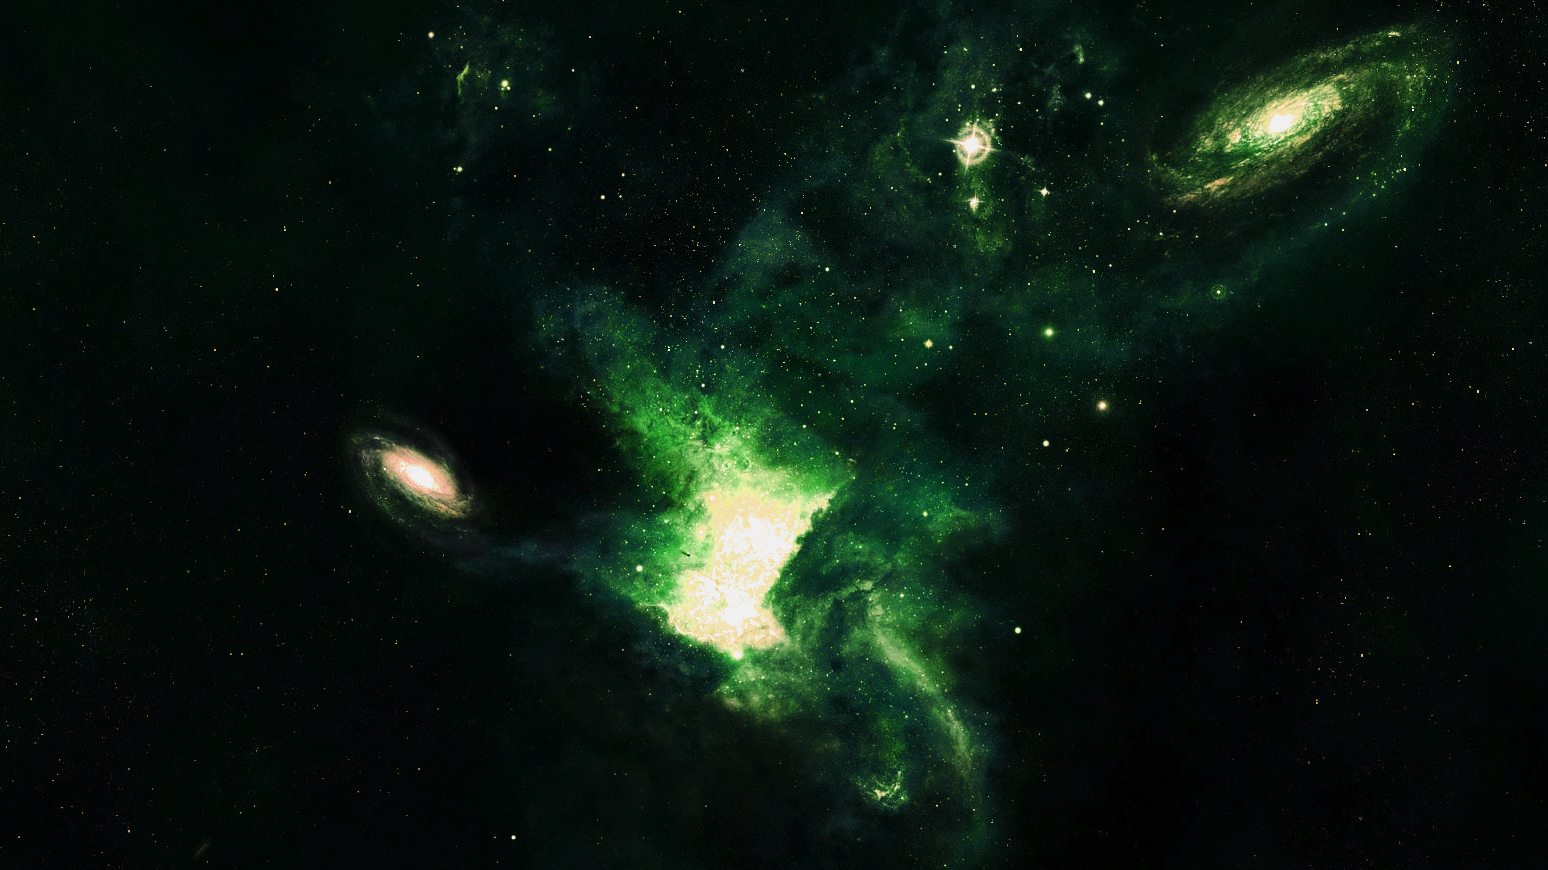 Space wallpaper and background image 1548x870 id 421362 - Space wallpaper green ...